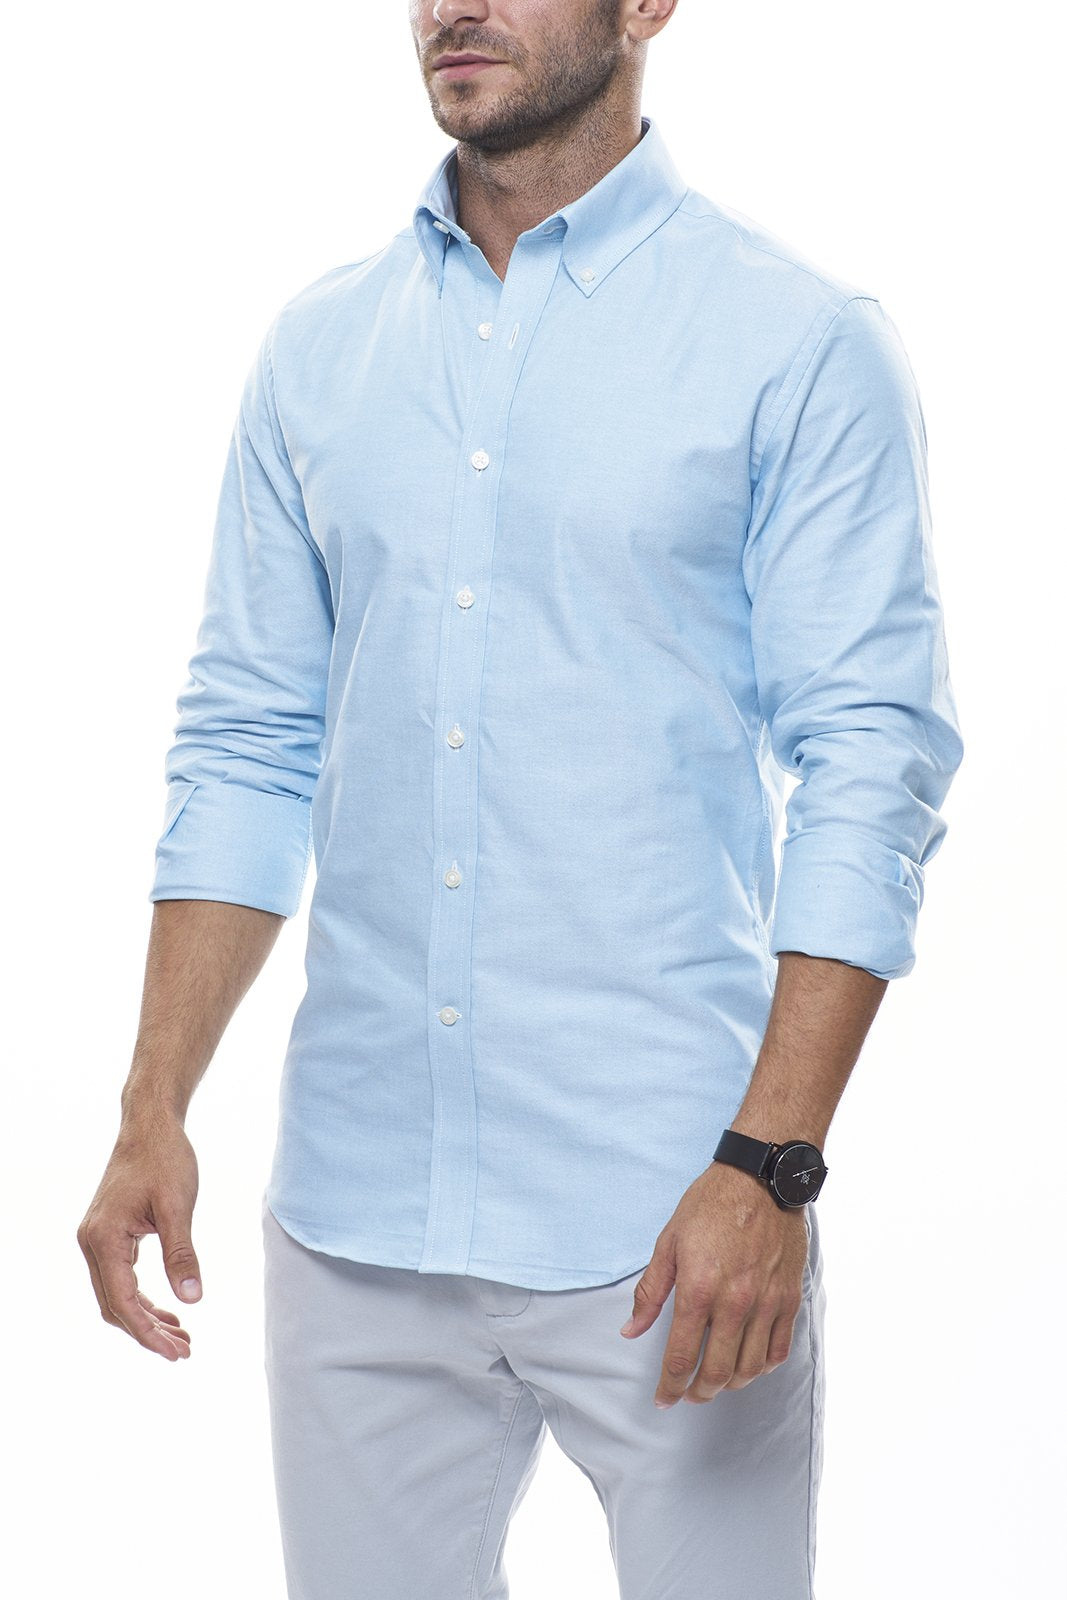 Lightweight Oxford in Teal: Semi-Spread Collar, Barrel Cuff